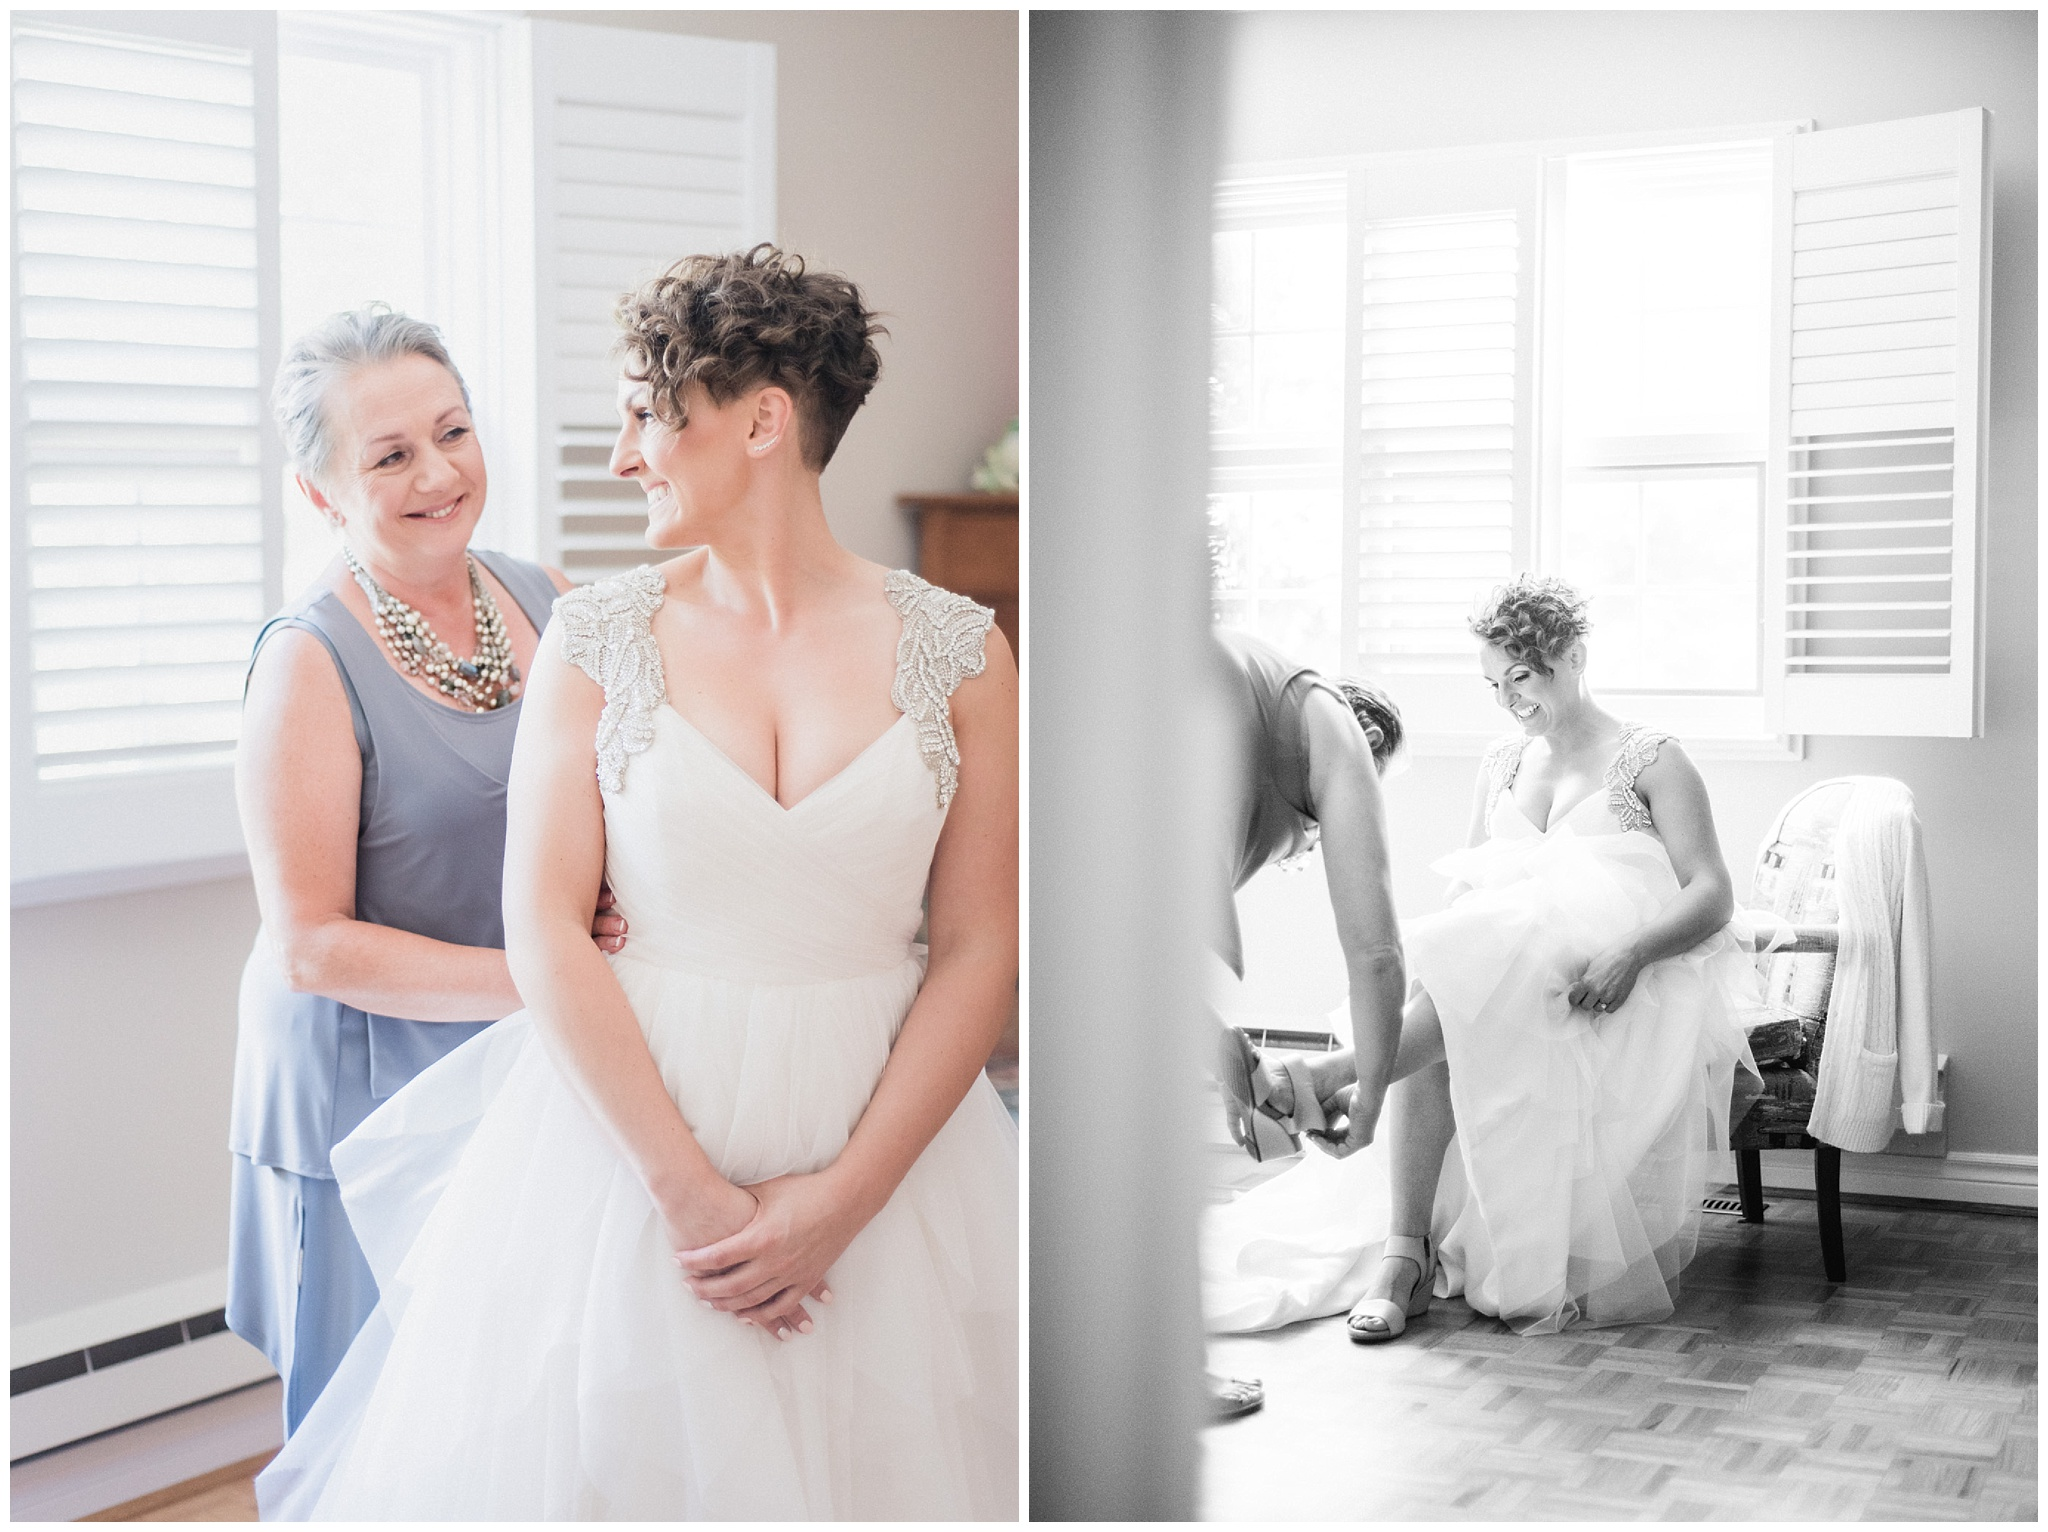 Bride getting ready by Jenn Kavanagh Photography